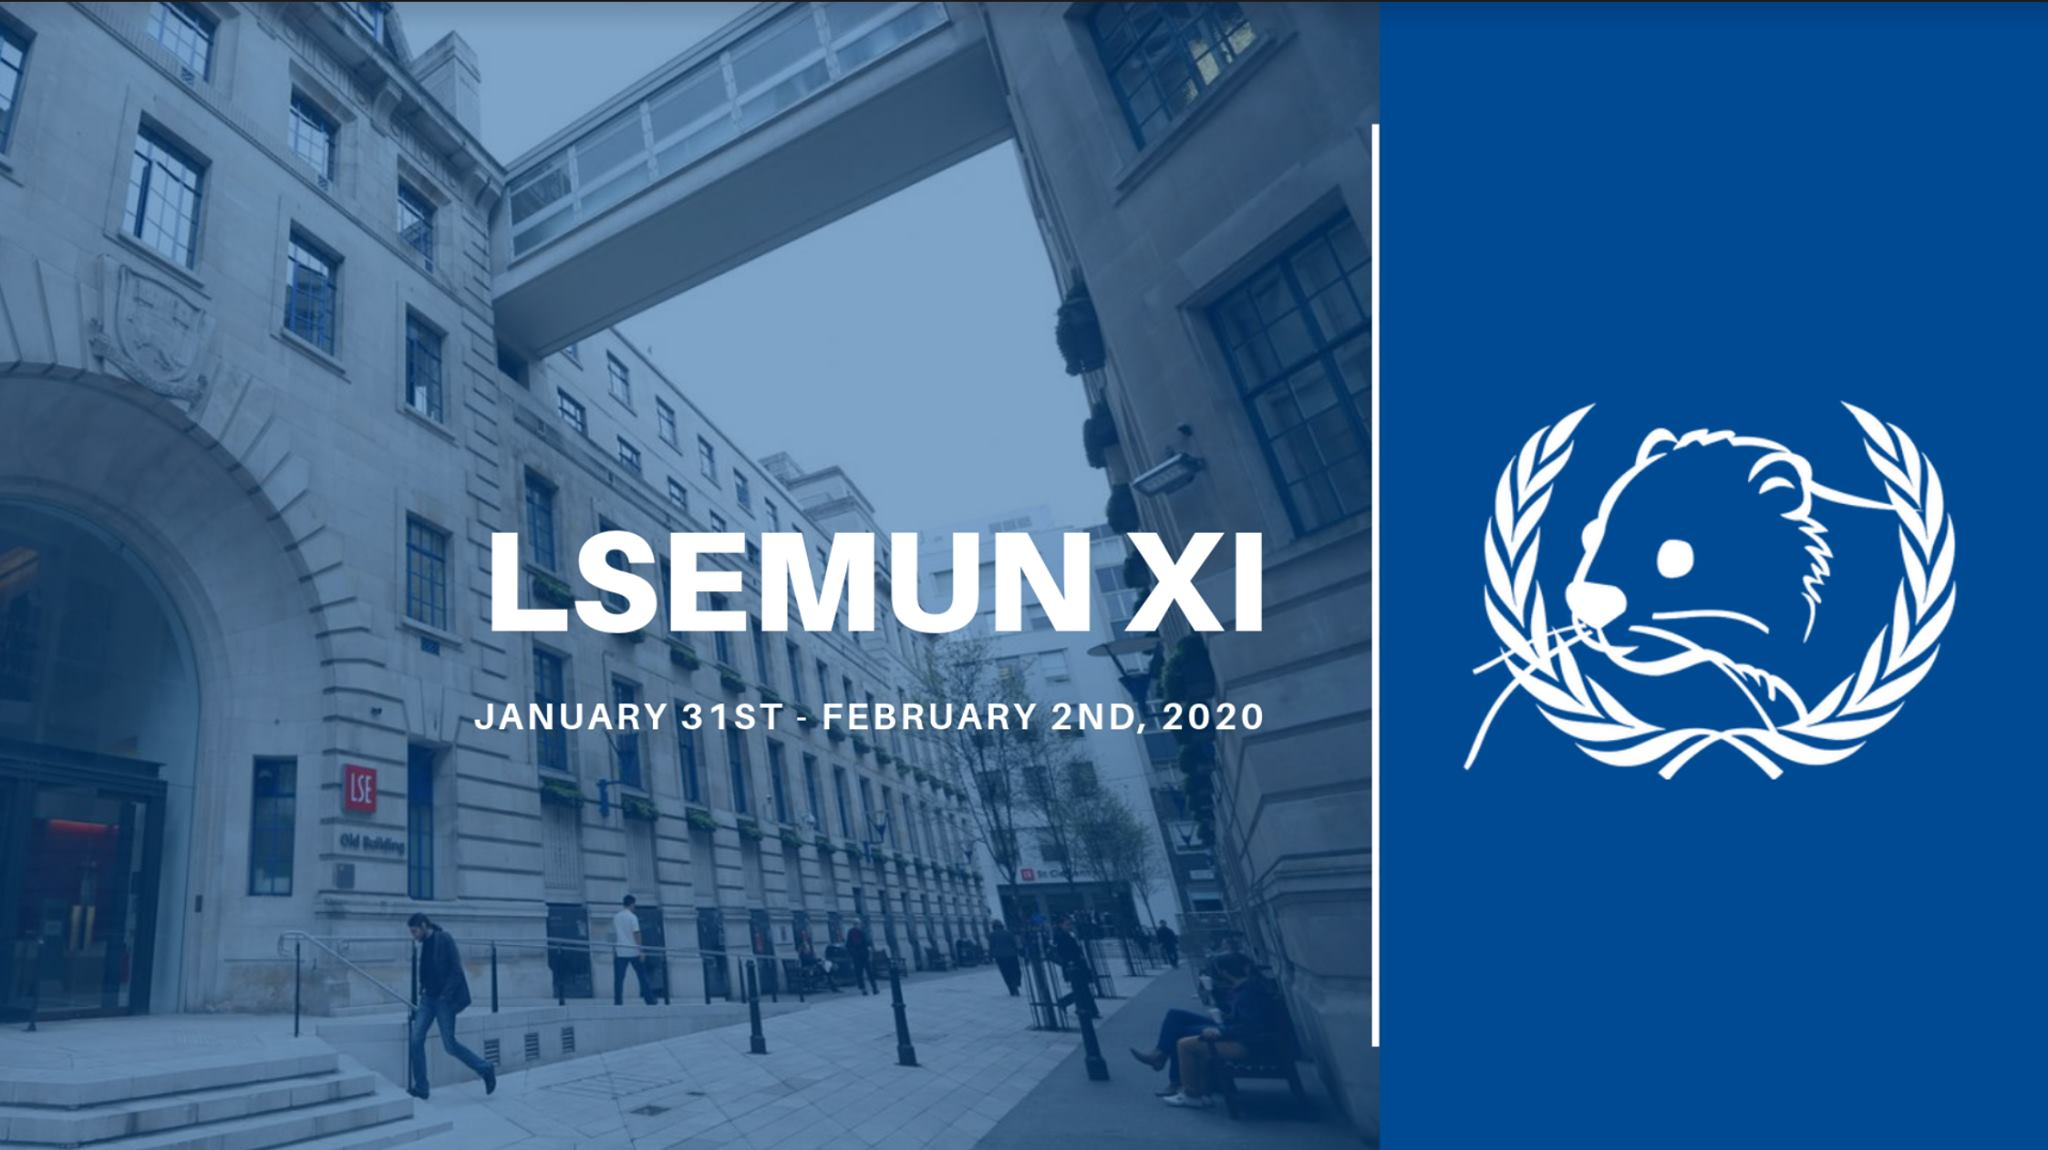 LSEMUN Conference  - LSEMUN is the United Nations Society's flagship conference, hosted at the LSE every February. Ever since its inaugural session in 2010, LSEMUN has consistently grown in size and has led the charge in pushing the technological, structural, and thematic boundaries of Model UN debate. Having just celebrated its tenth birthday this year, LSEMUN has emerged as Europe's leading crisis conference.Crisis is a progressive form of Model UN which seeks to add elements of realism and responsiveness to the otherwise static MUN format. With a fluid style of discussion and real-time implications to proposals, the crisis format provides an accessible yet intense simulation of structured discussion that heightens delegates' immersion.Moreover, Crisis MUN moves away from the traditional bodies of the United Nations to allow for debate and discussions of issues and topics outside the realm of international relations. Over the years LSEMUN has hosted a number of these less conventional simulations, challenging delegates to discuss agri-food trade in the halls of the World Trade Organization, negotiate peaceful resolutions to civil wars in Lebanon and 19th-century Japan, run full-fledged political campaigns in future elections for the United States Presidency and the European Union Parliament, and even travel to the fictional continents of Westeros and Middle Earth.